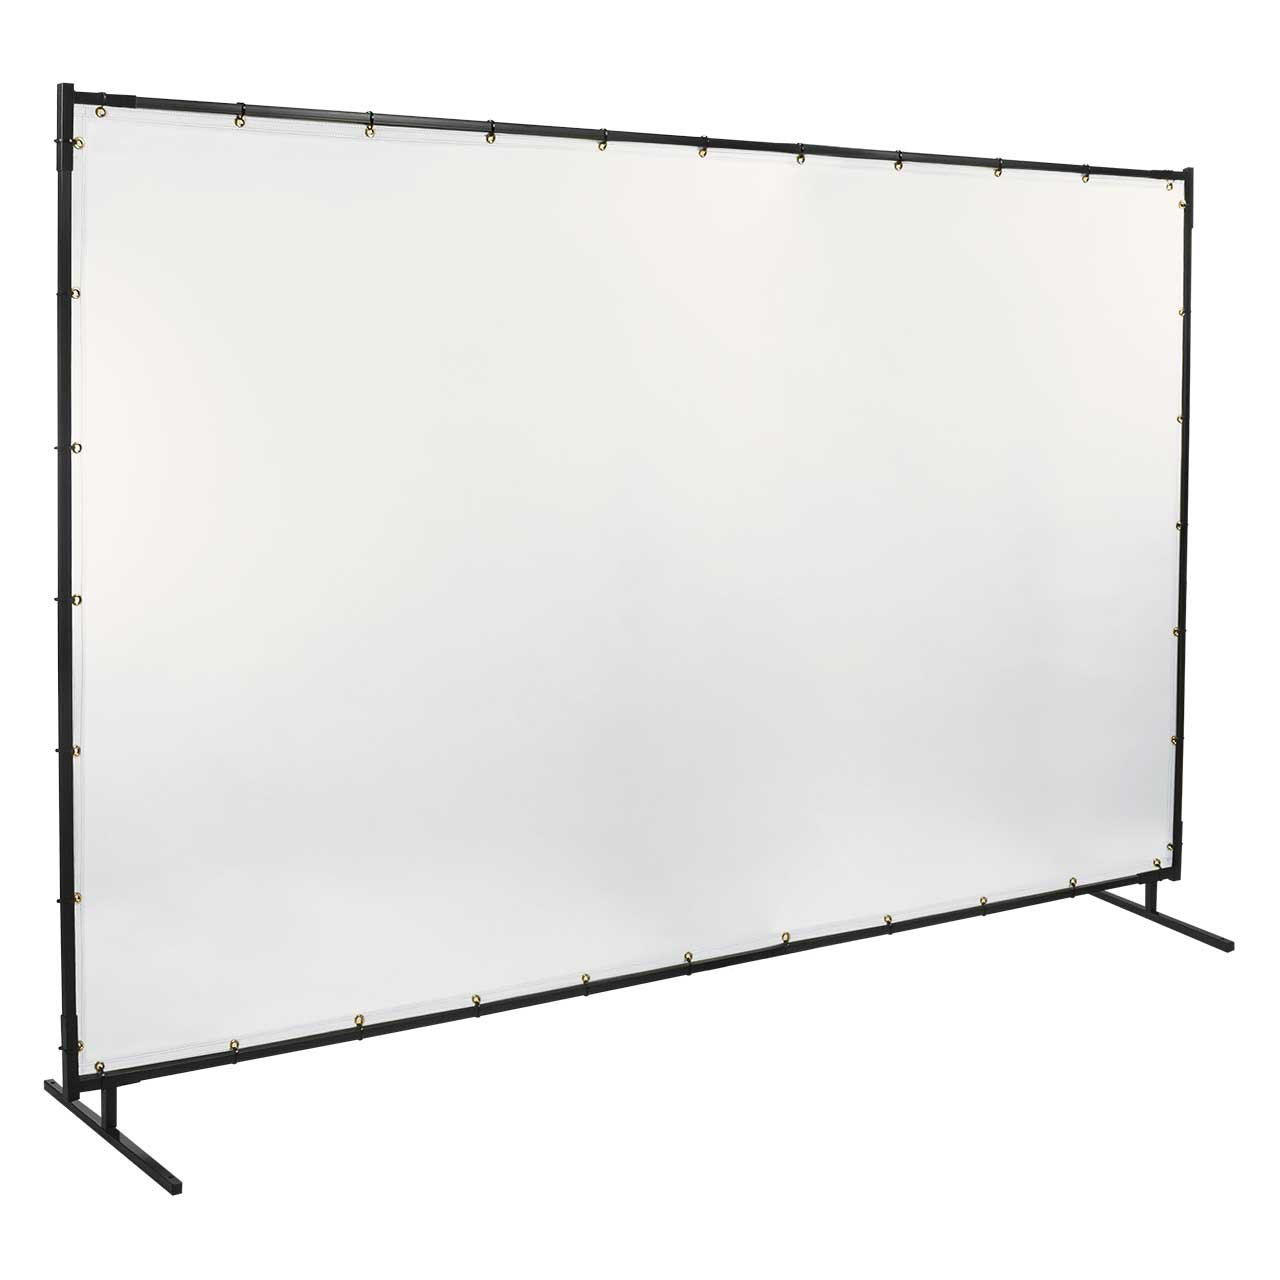 Steiner 539-6X10 Protect-O-Screen Classic Welding Screen with 16 Mil Vinyl Curtain, Clear, 6' x 10'